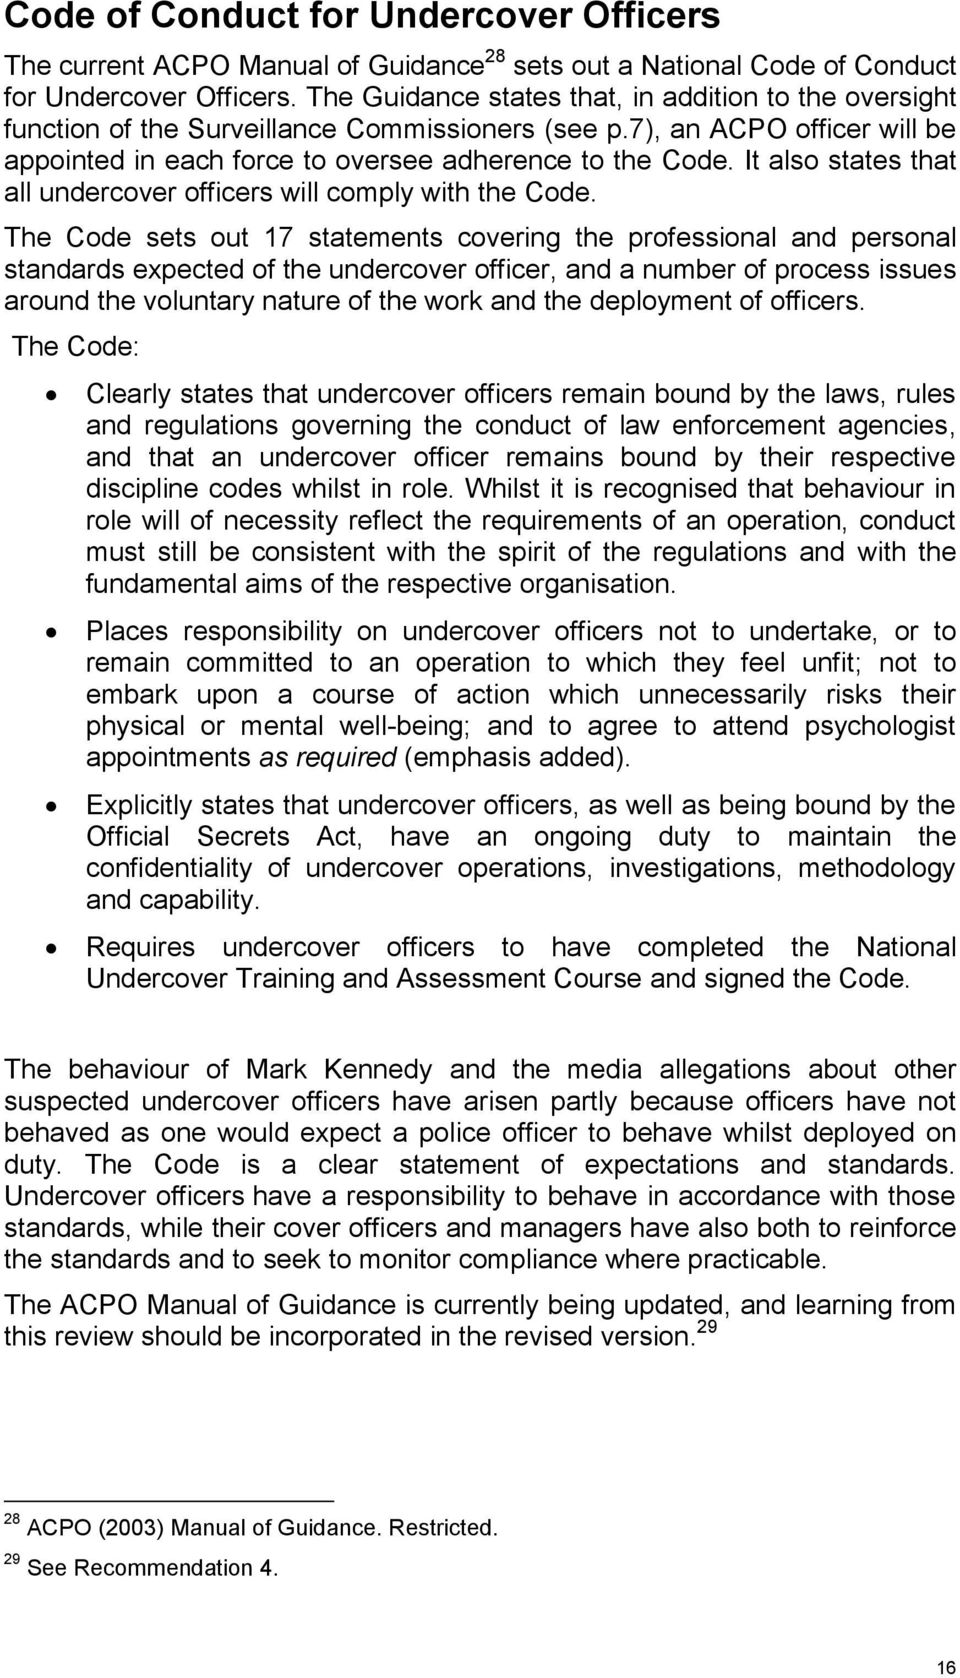 It also states that all undercover officers will comply with the Code.